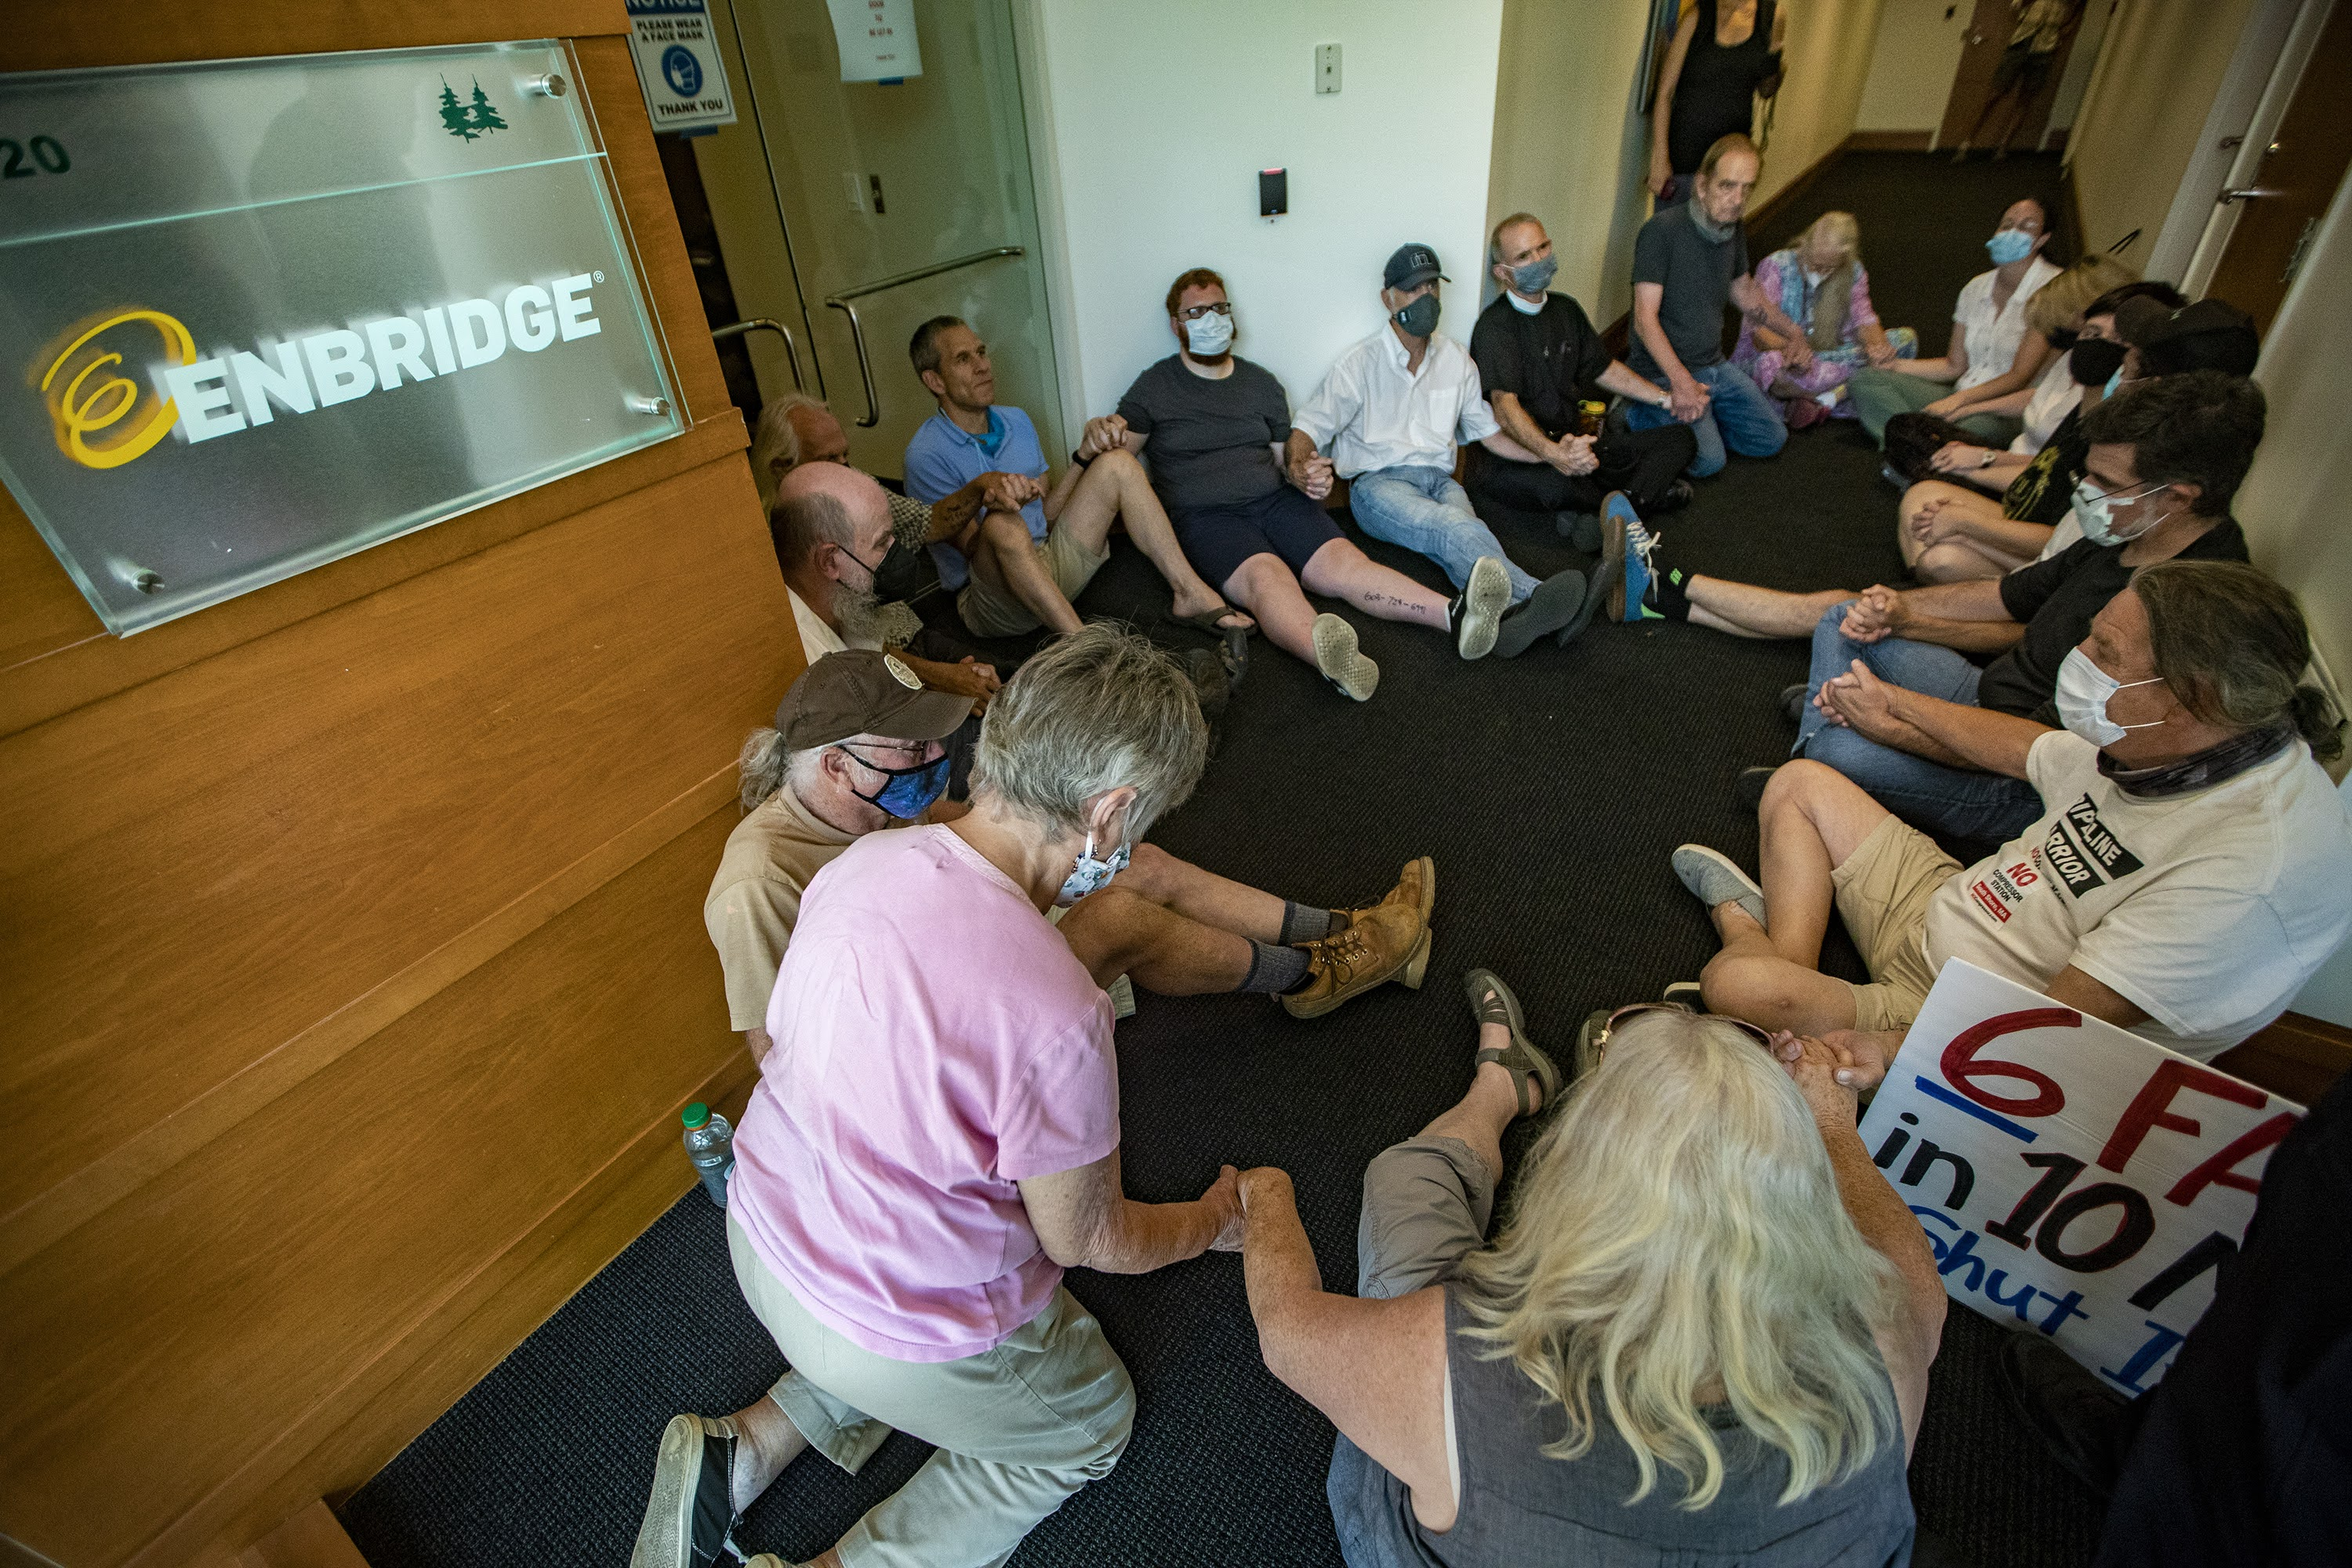 A group of protesters gather near the front door of the Enbridge office in Waltham. (Jesse Costa/WBUR)